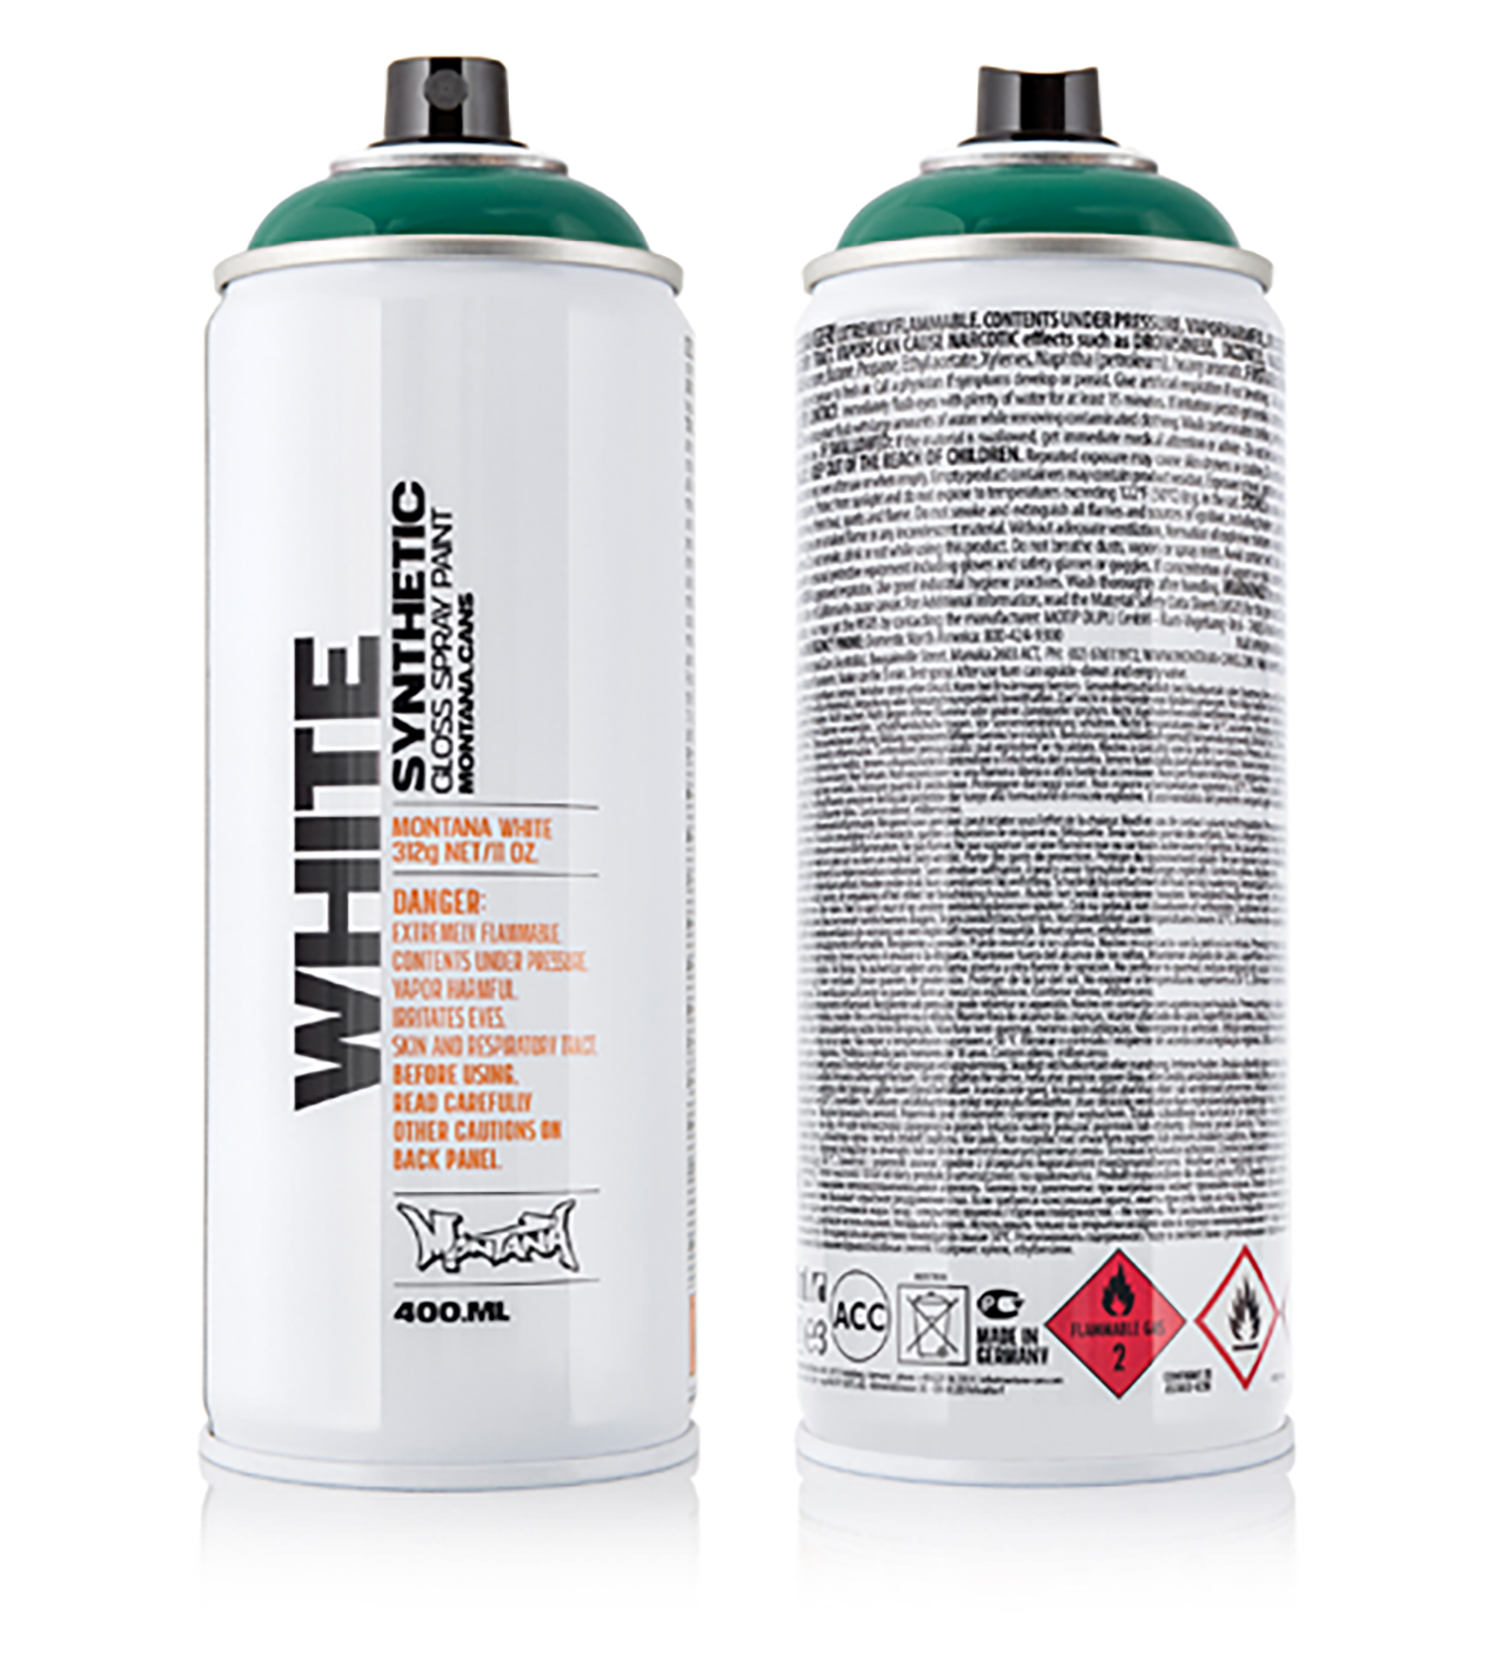 MONTANA-WHITE-SPRAY-400ML-6160